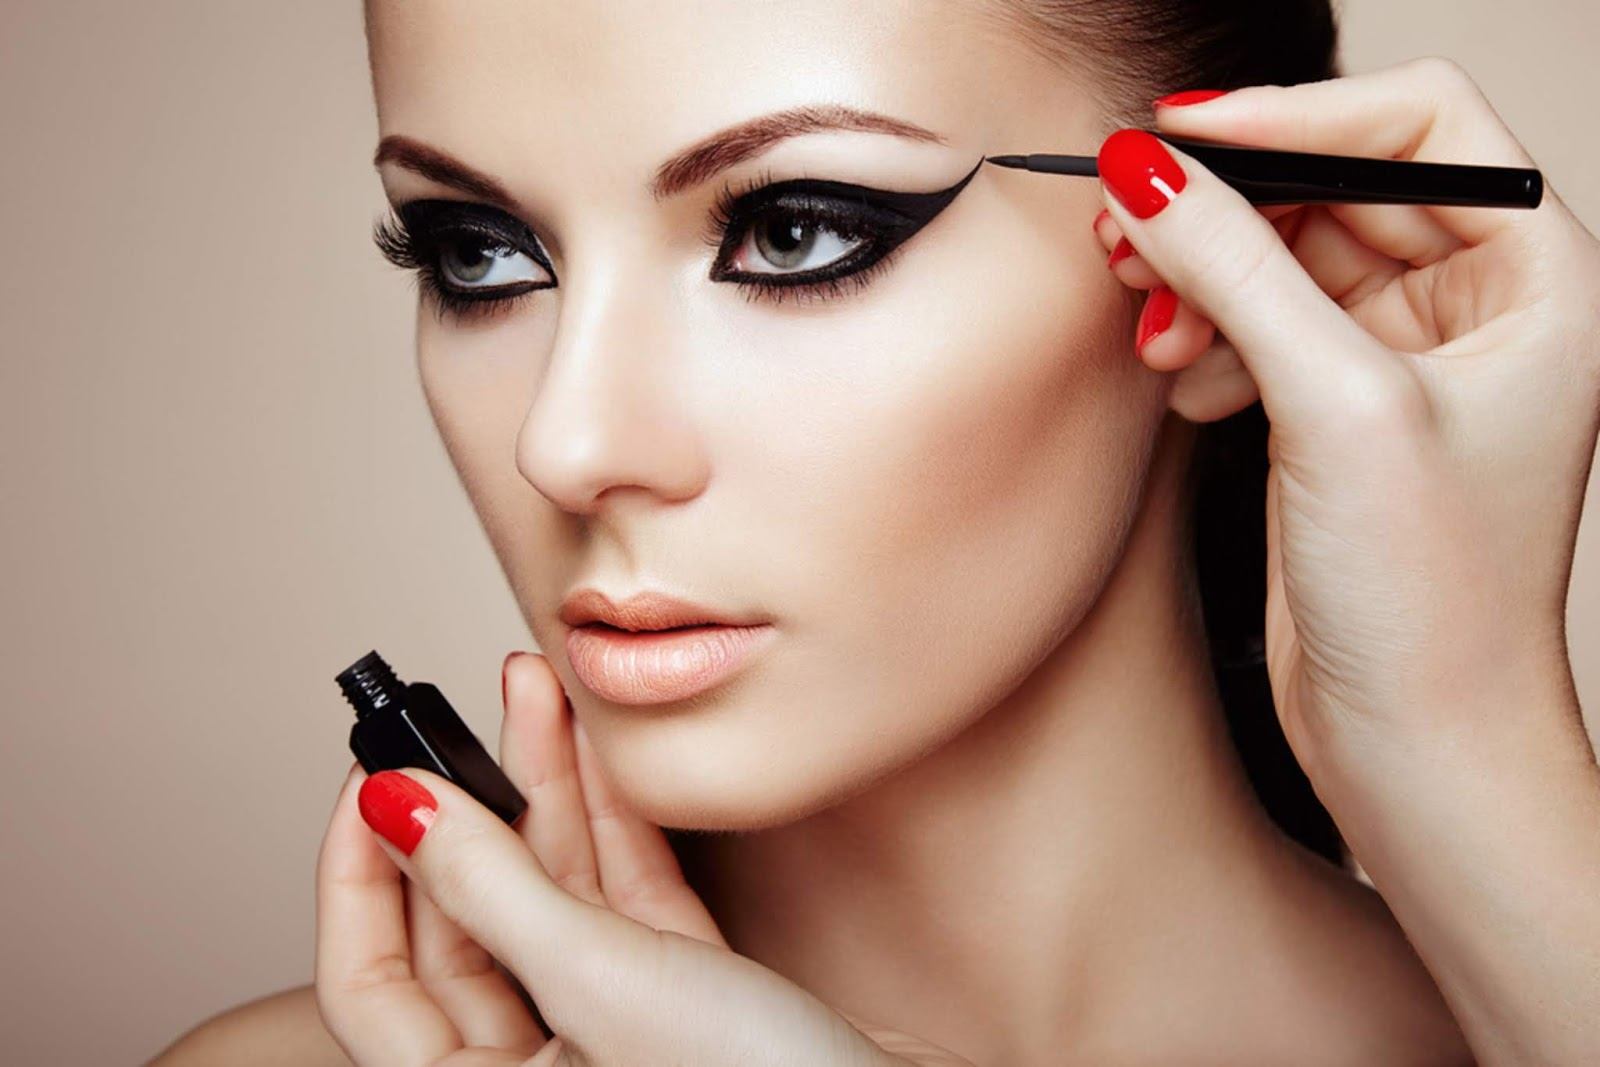 Perfect Your Look With These Beauty Tips